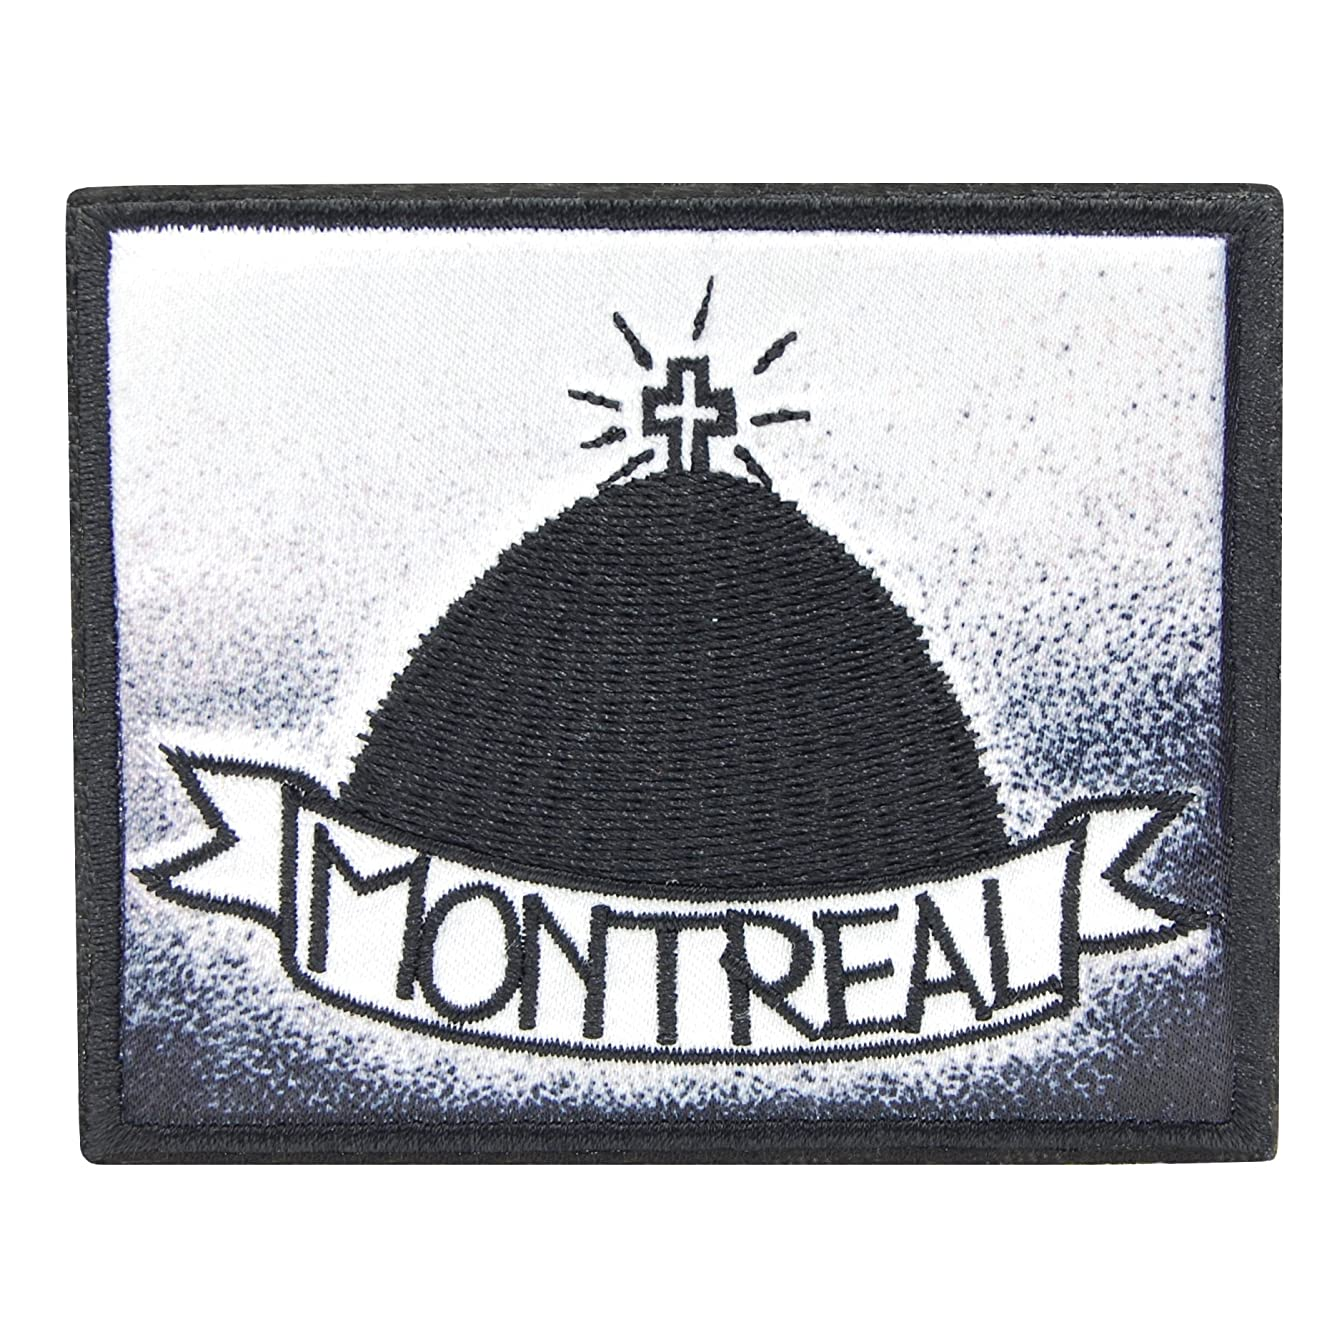 Iron on Embroidered Patch - Montreal